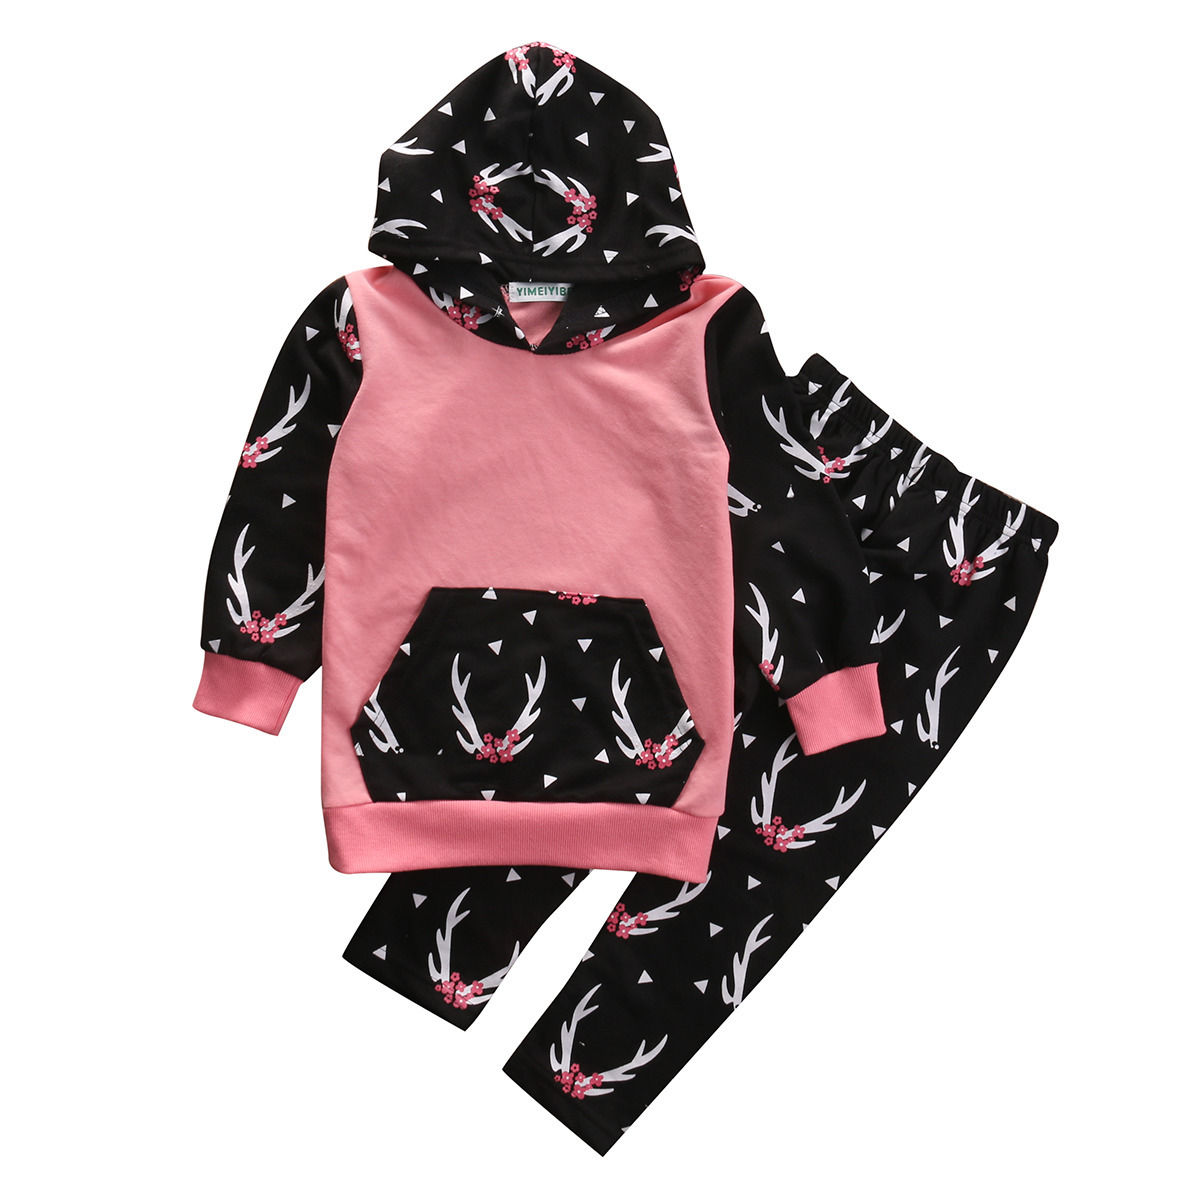 2PCS Toddler Kids Baby Girl Clothes Cute Deer Hooded Sweatshirt Top +Pant Outfit Fashion Children Suit Clothing Set 2-6Y brand cute toddler girl clothes rainbow color sling 2 pcs baby girl clothing sets for 6m 3y free shipping